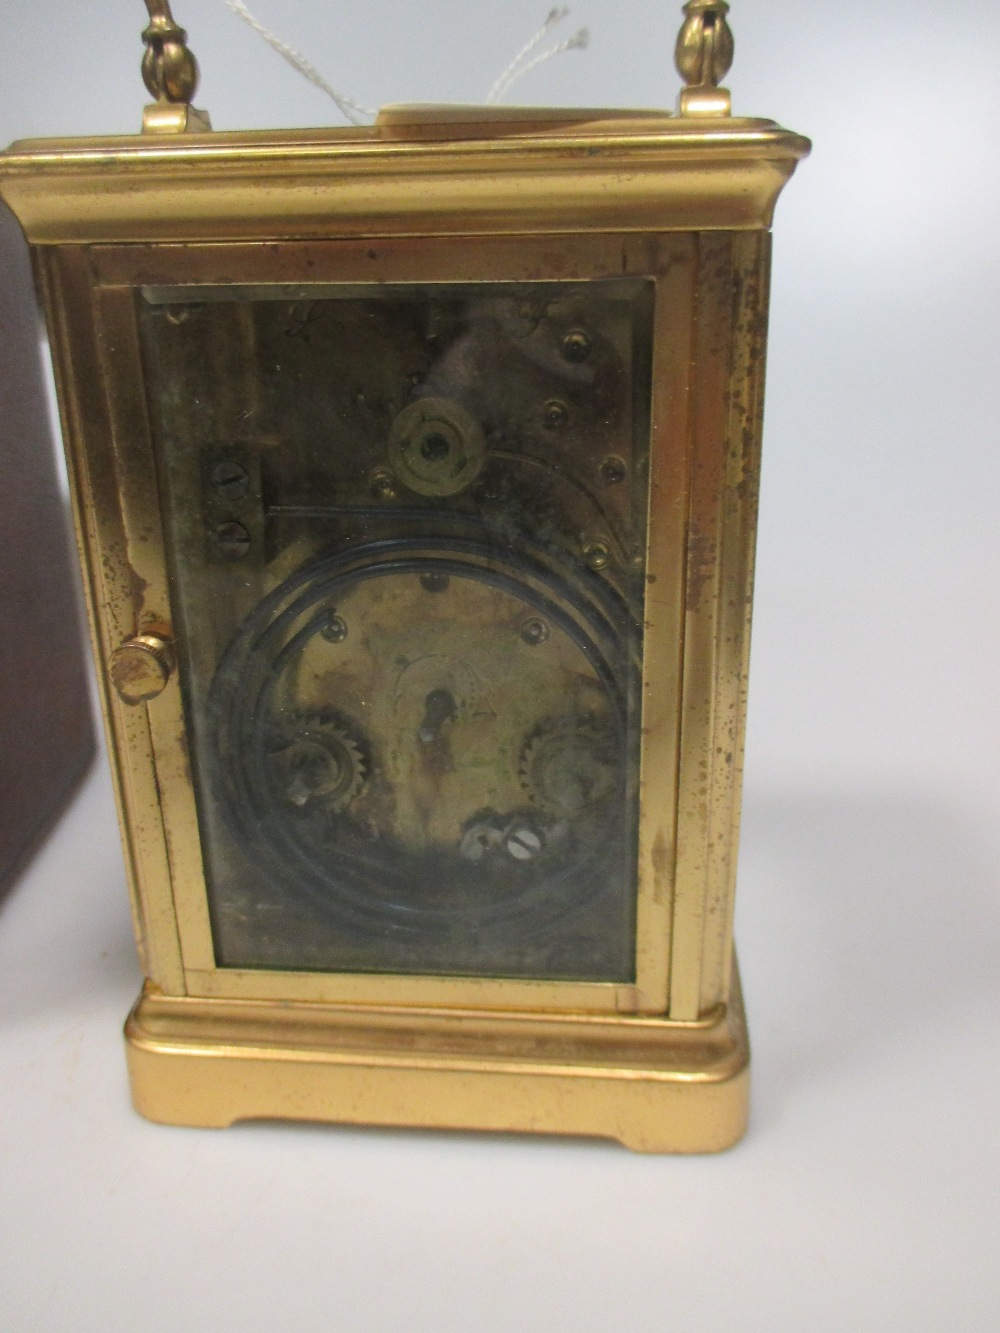 Lot 18 - A French carriage clock, typical shape case, dial (cracked) painted with a lake scene, gong striking